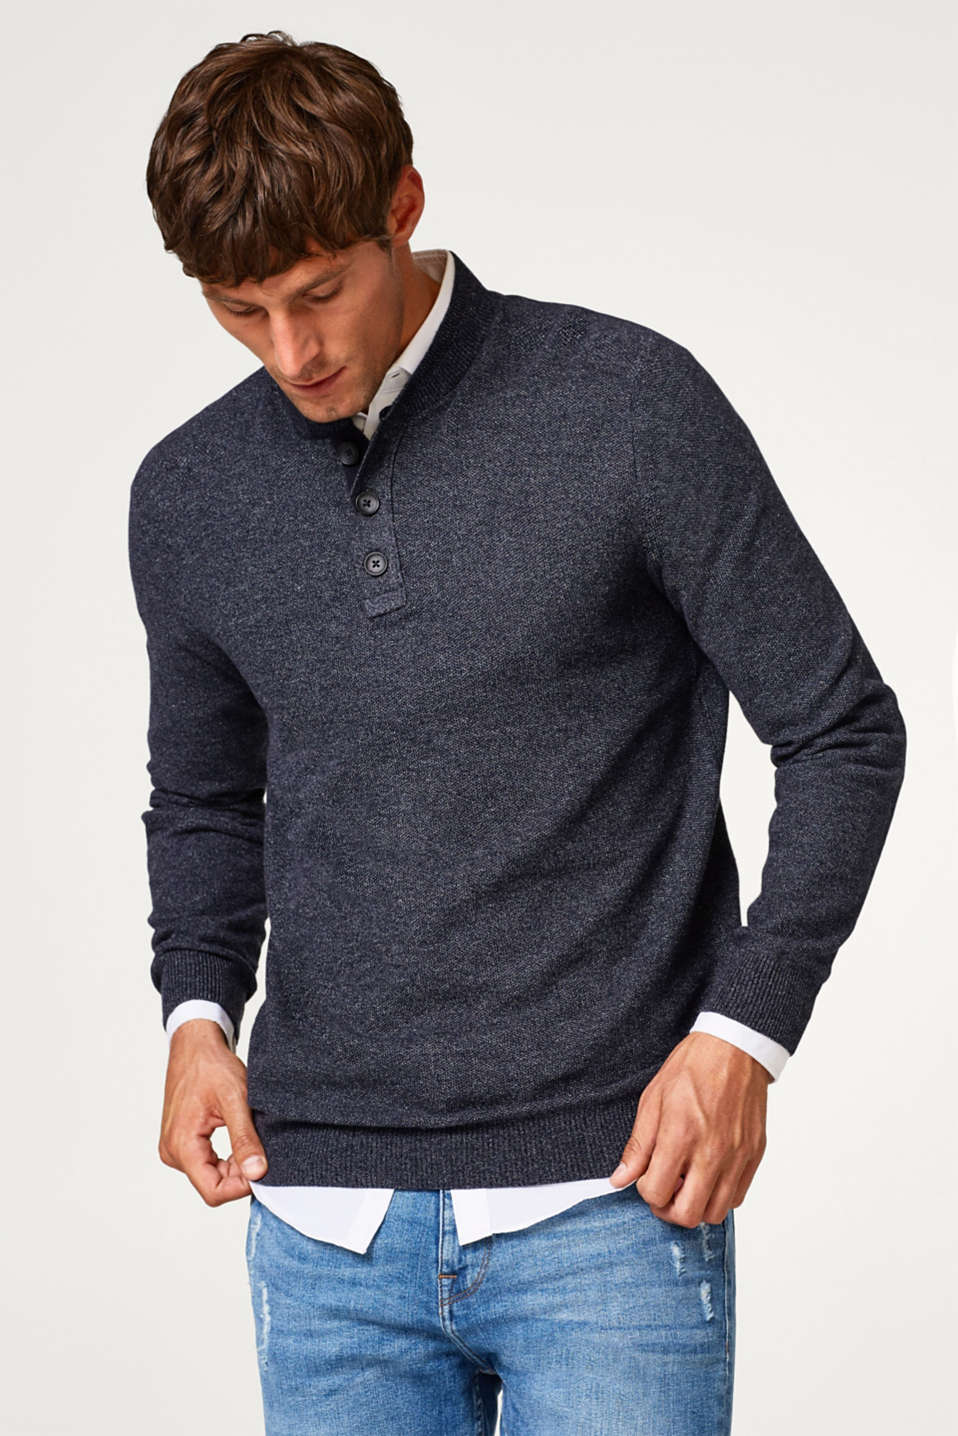 Esprit - Henley knit jumper, 100% cotton